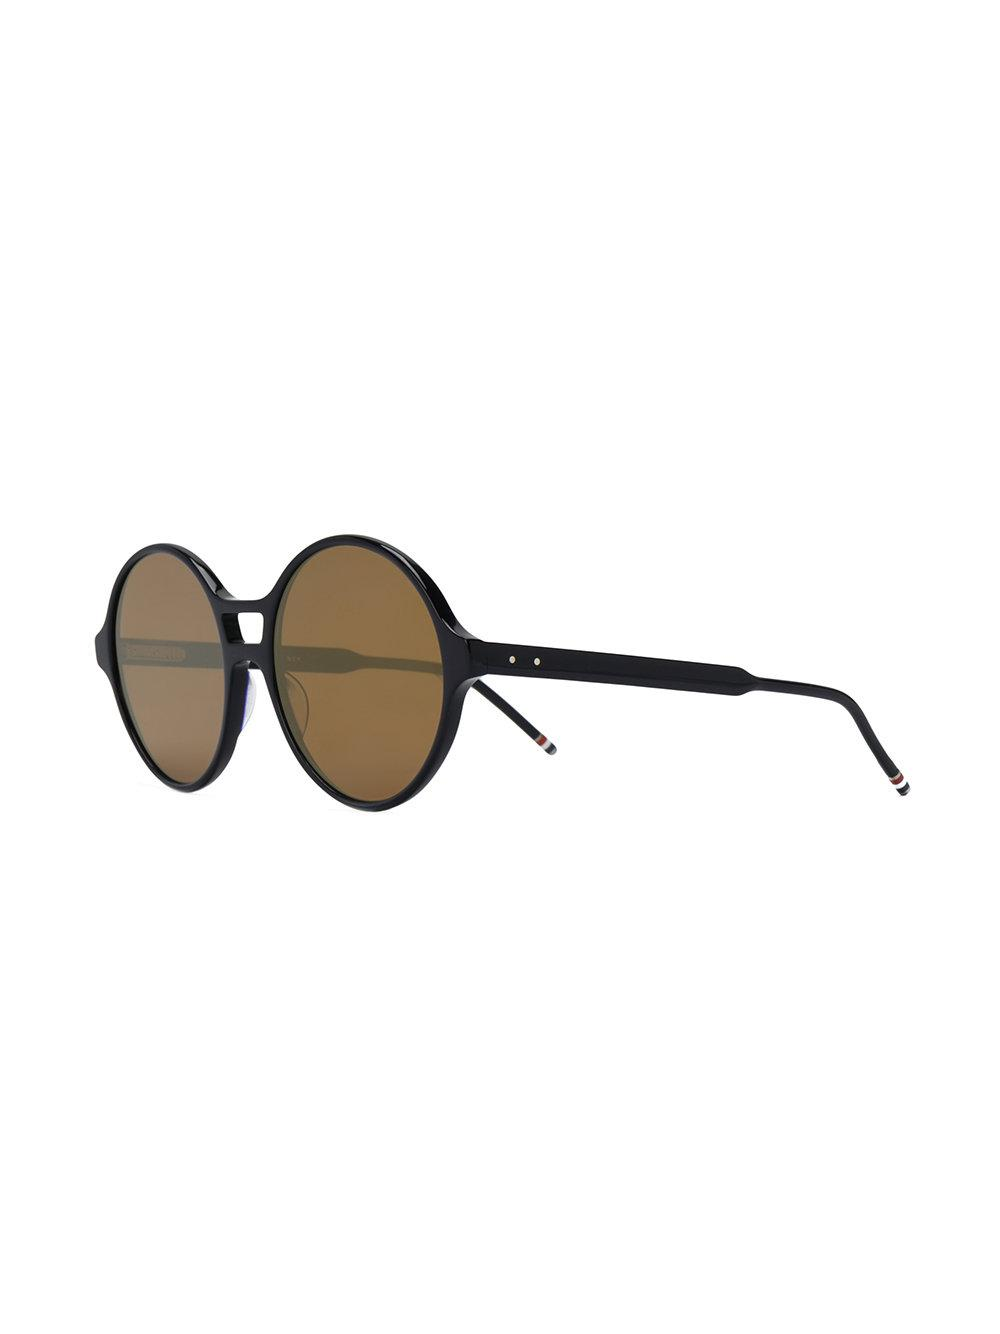 Thom Browne Round Frame Tinted Sunglasses in Black